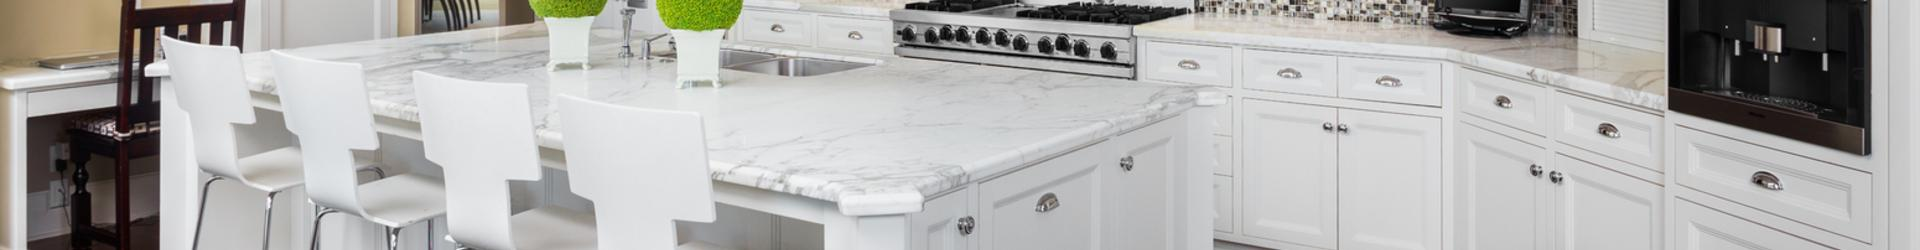 About Us   NATIONWIDE KITCHEN INSTALLERS   Reading PA